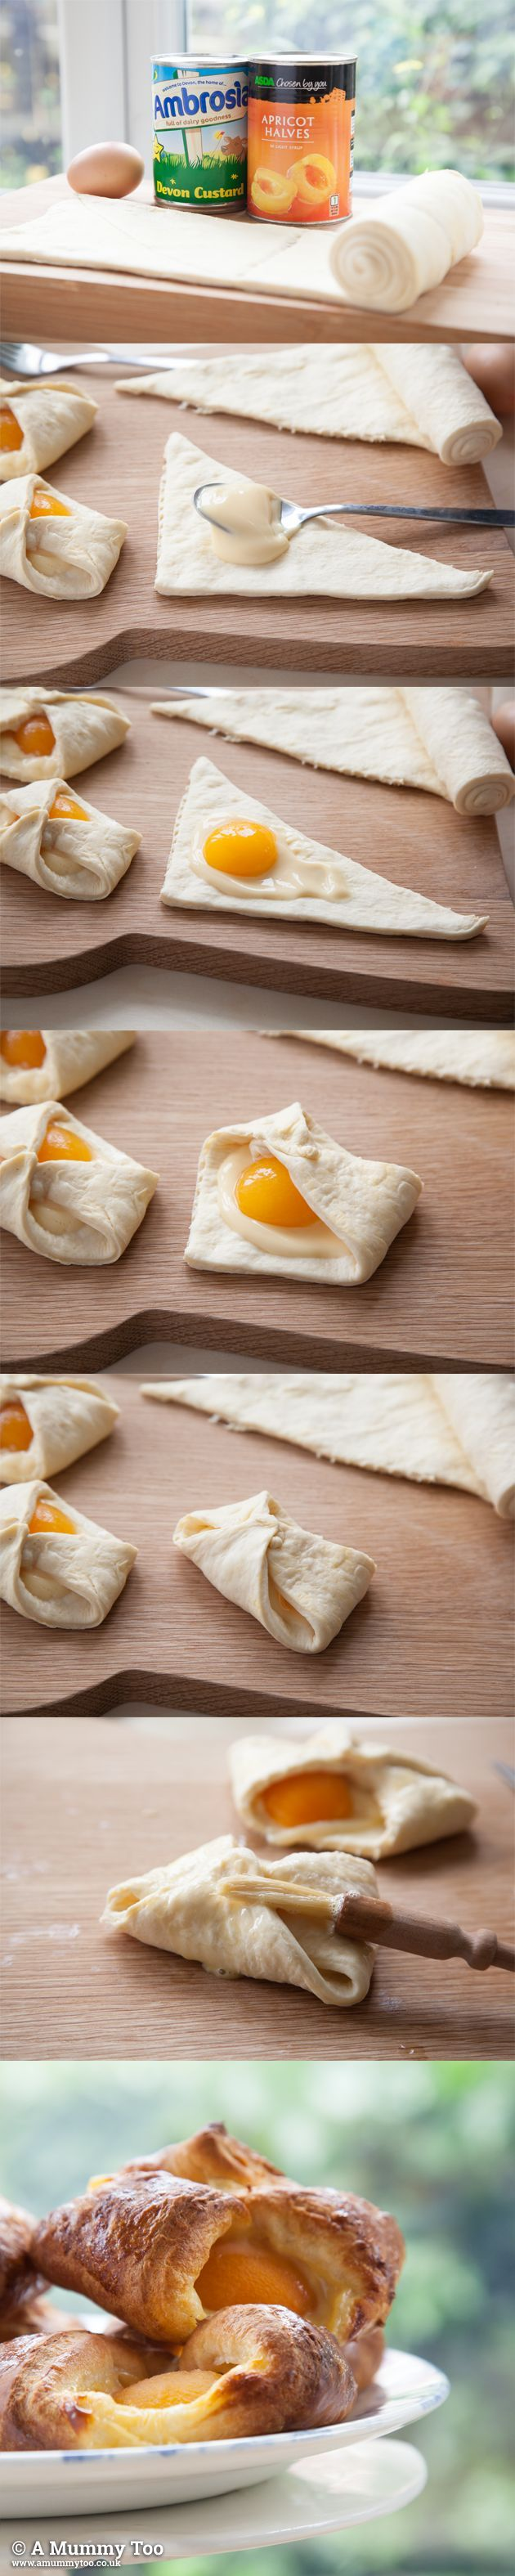 These look amazing! Must make these tasty desserts NOW! Super fast apricot custard Danish recipe